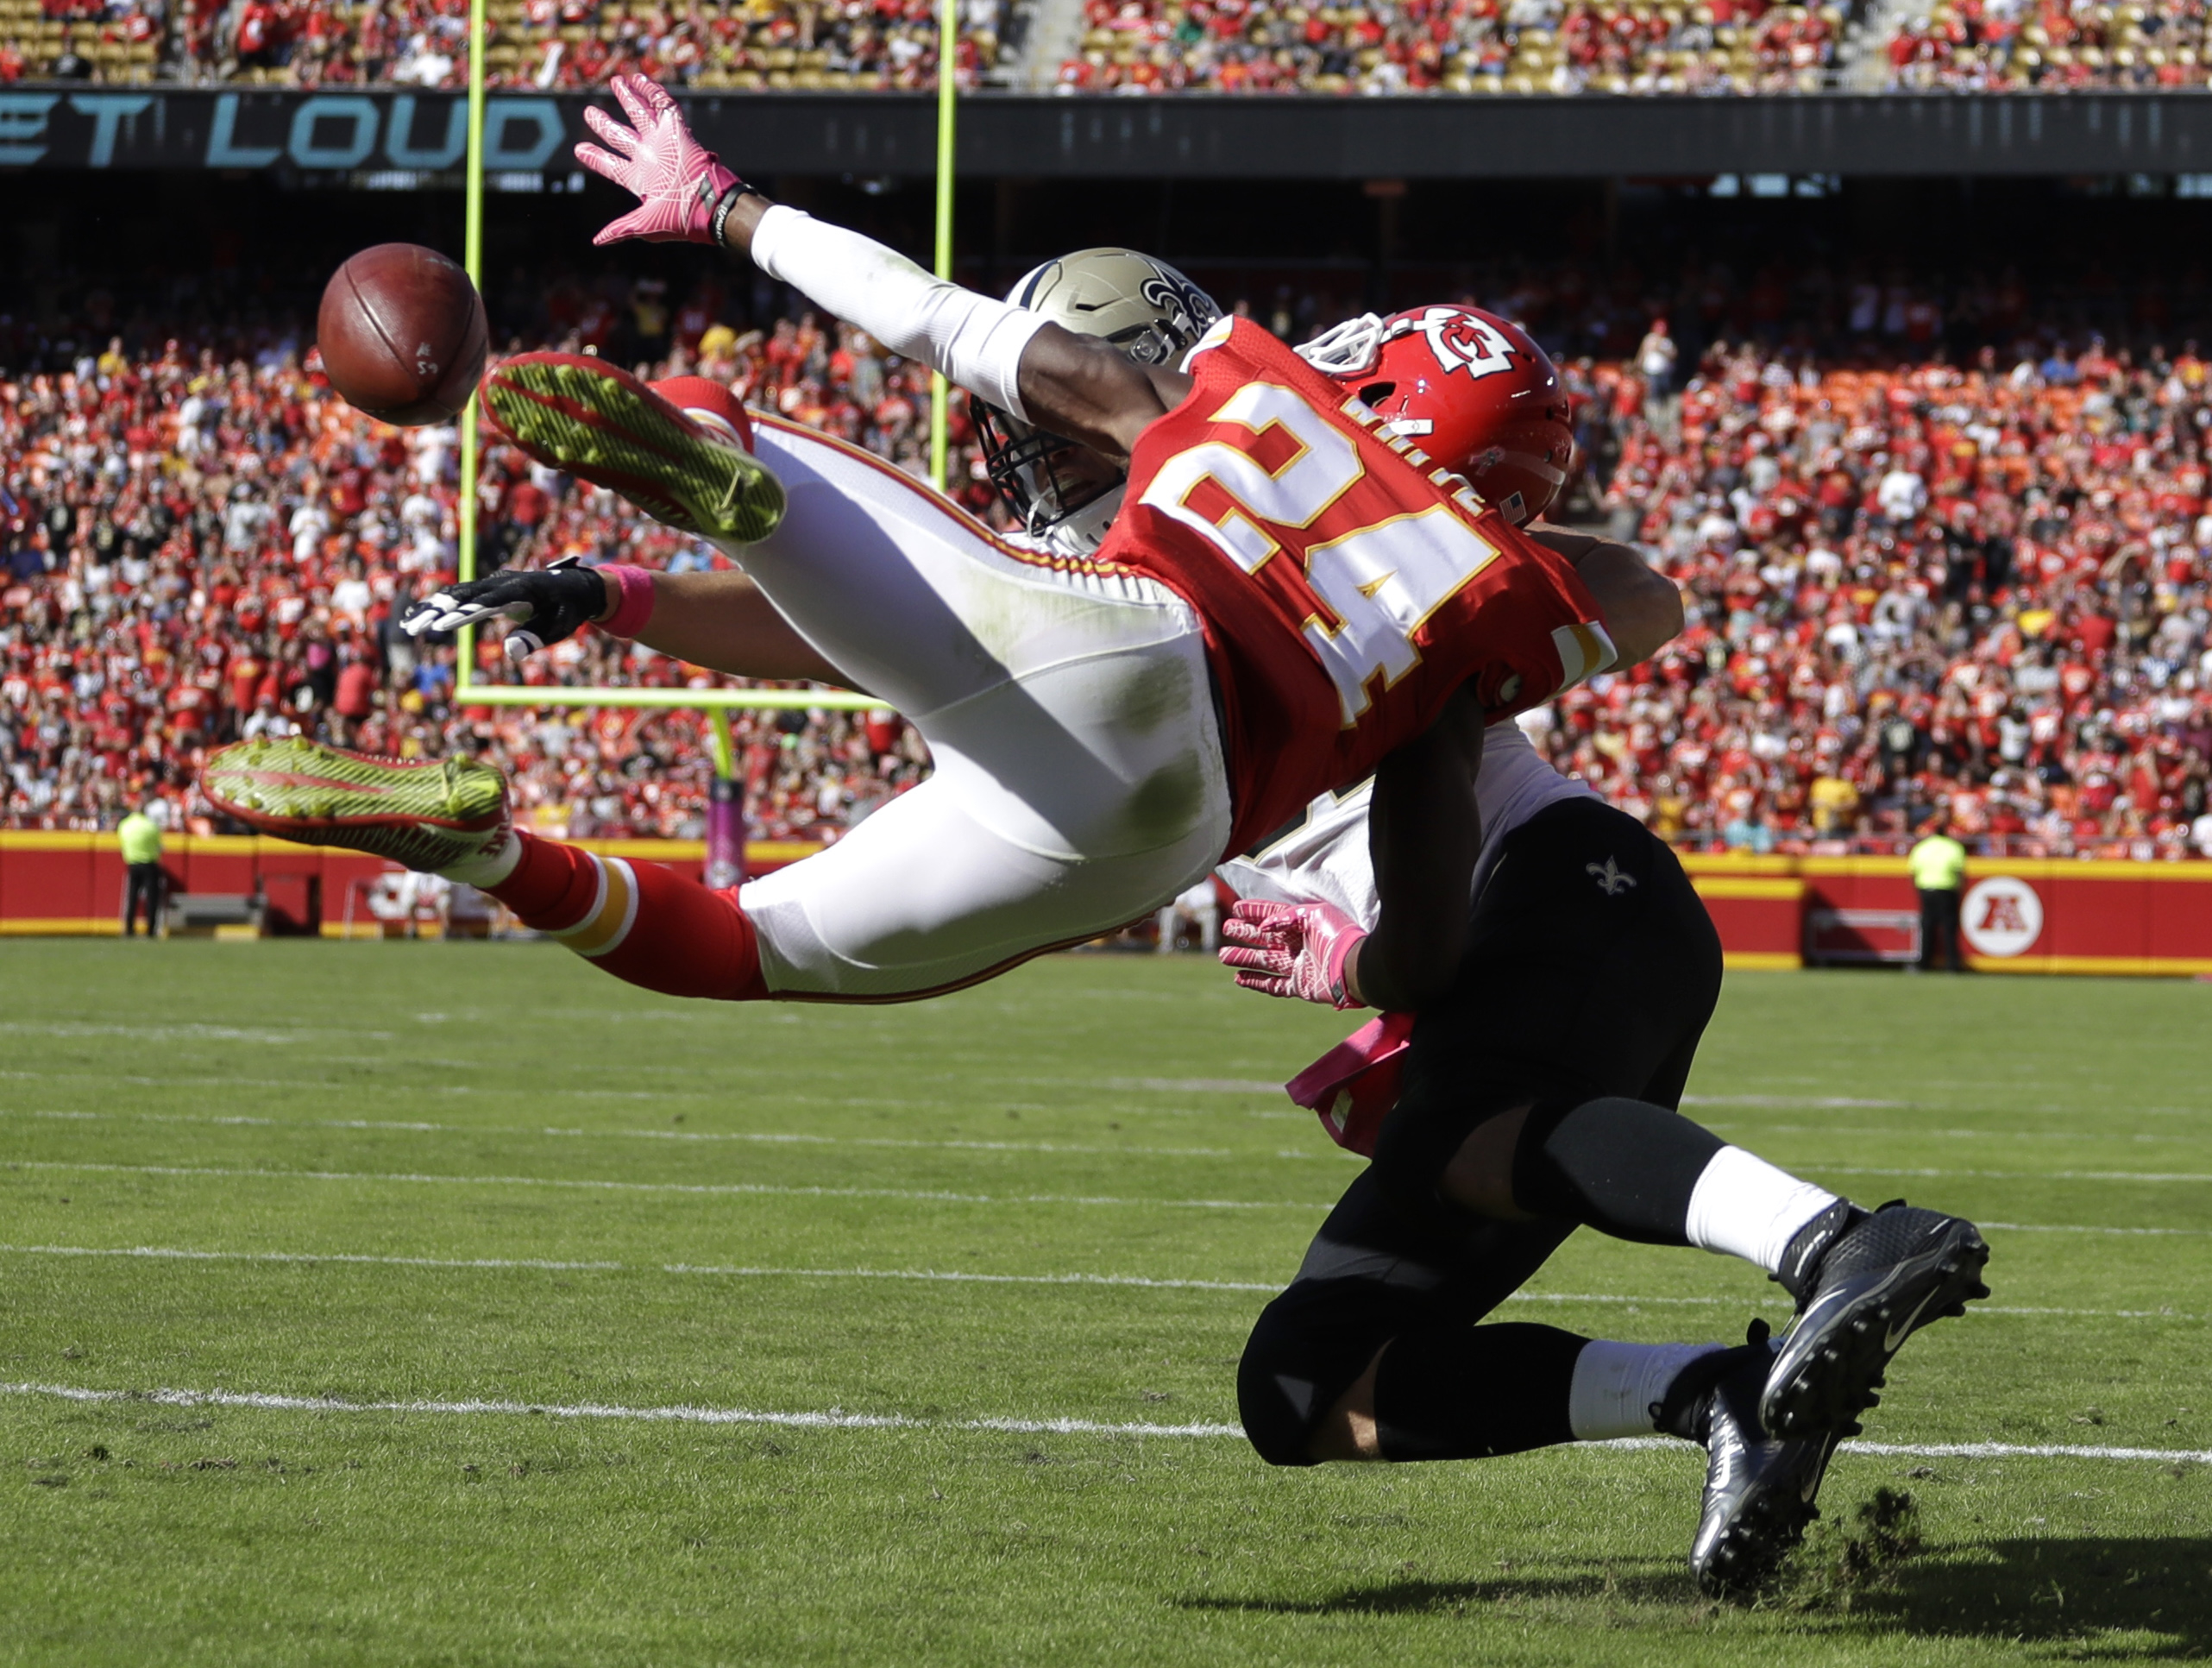 Kansas City Chiefs defensive back D.J. White (24) attempts to catch the ball while defended by New Orleans Saints tight end Coby Fleener (82), during the second half of an NFL football game in Kansas City, Mo., Sunday, Oct. 23, 2016. The play was negated